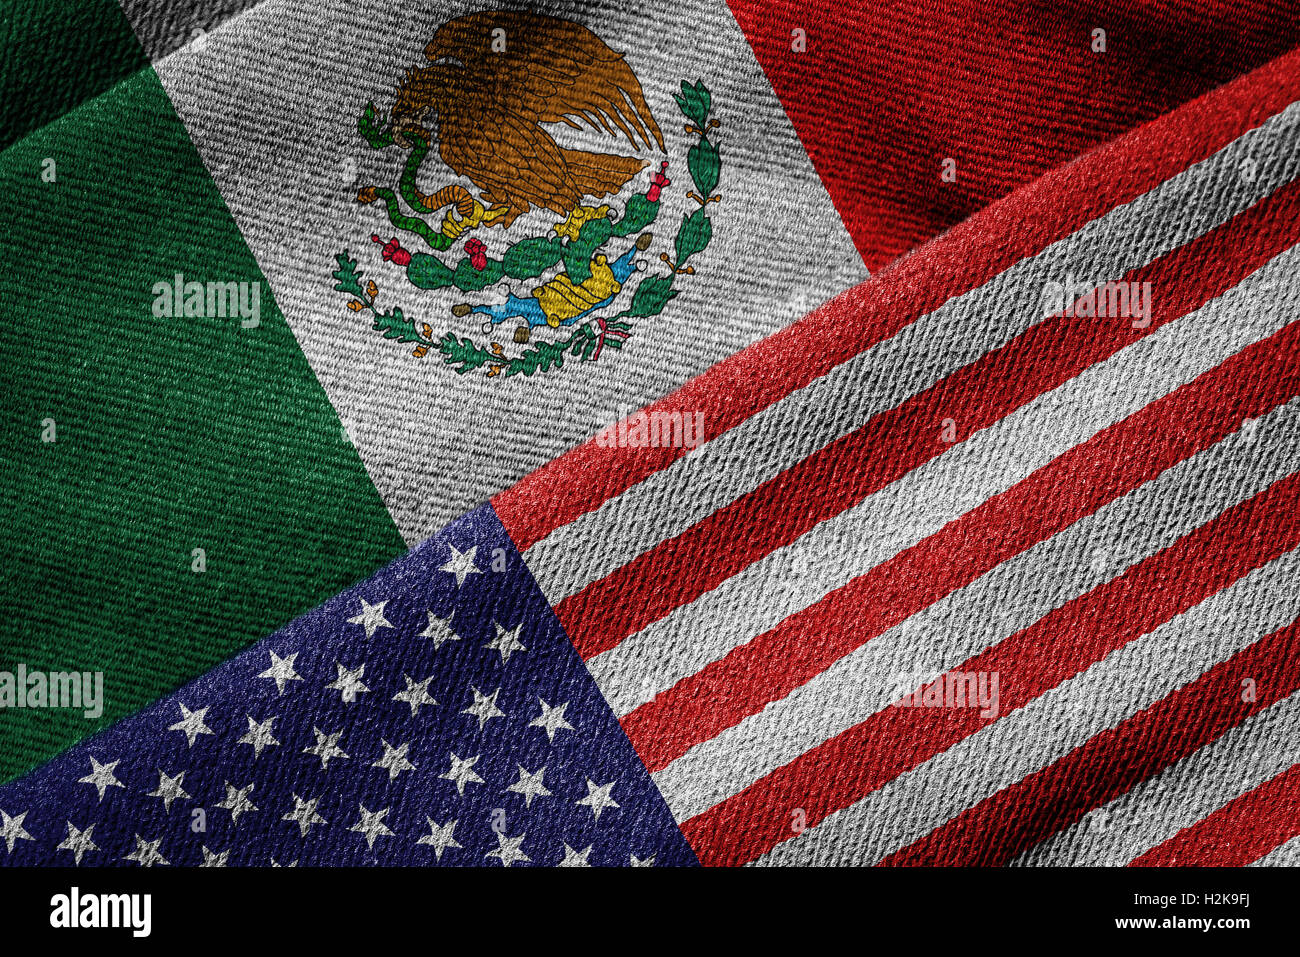 3D rendering of the flags of USA and Mexico on woven fabric texture. Detailed textile pattern and grunge theme. Stock Photo